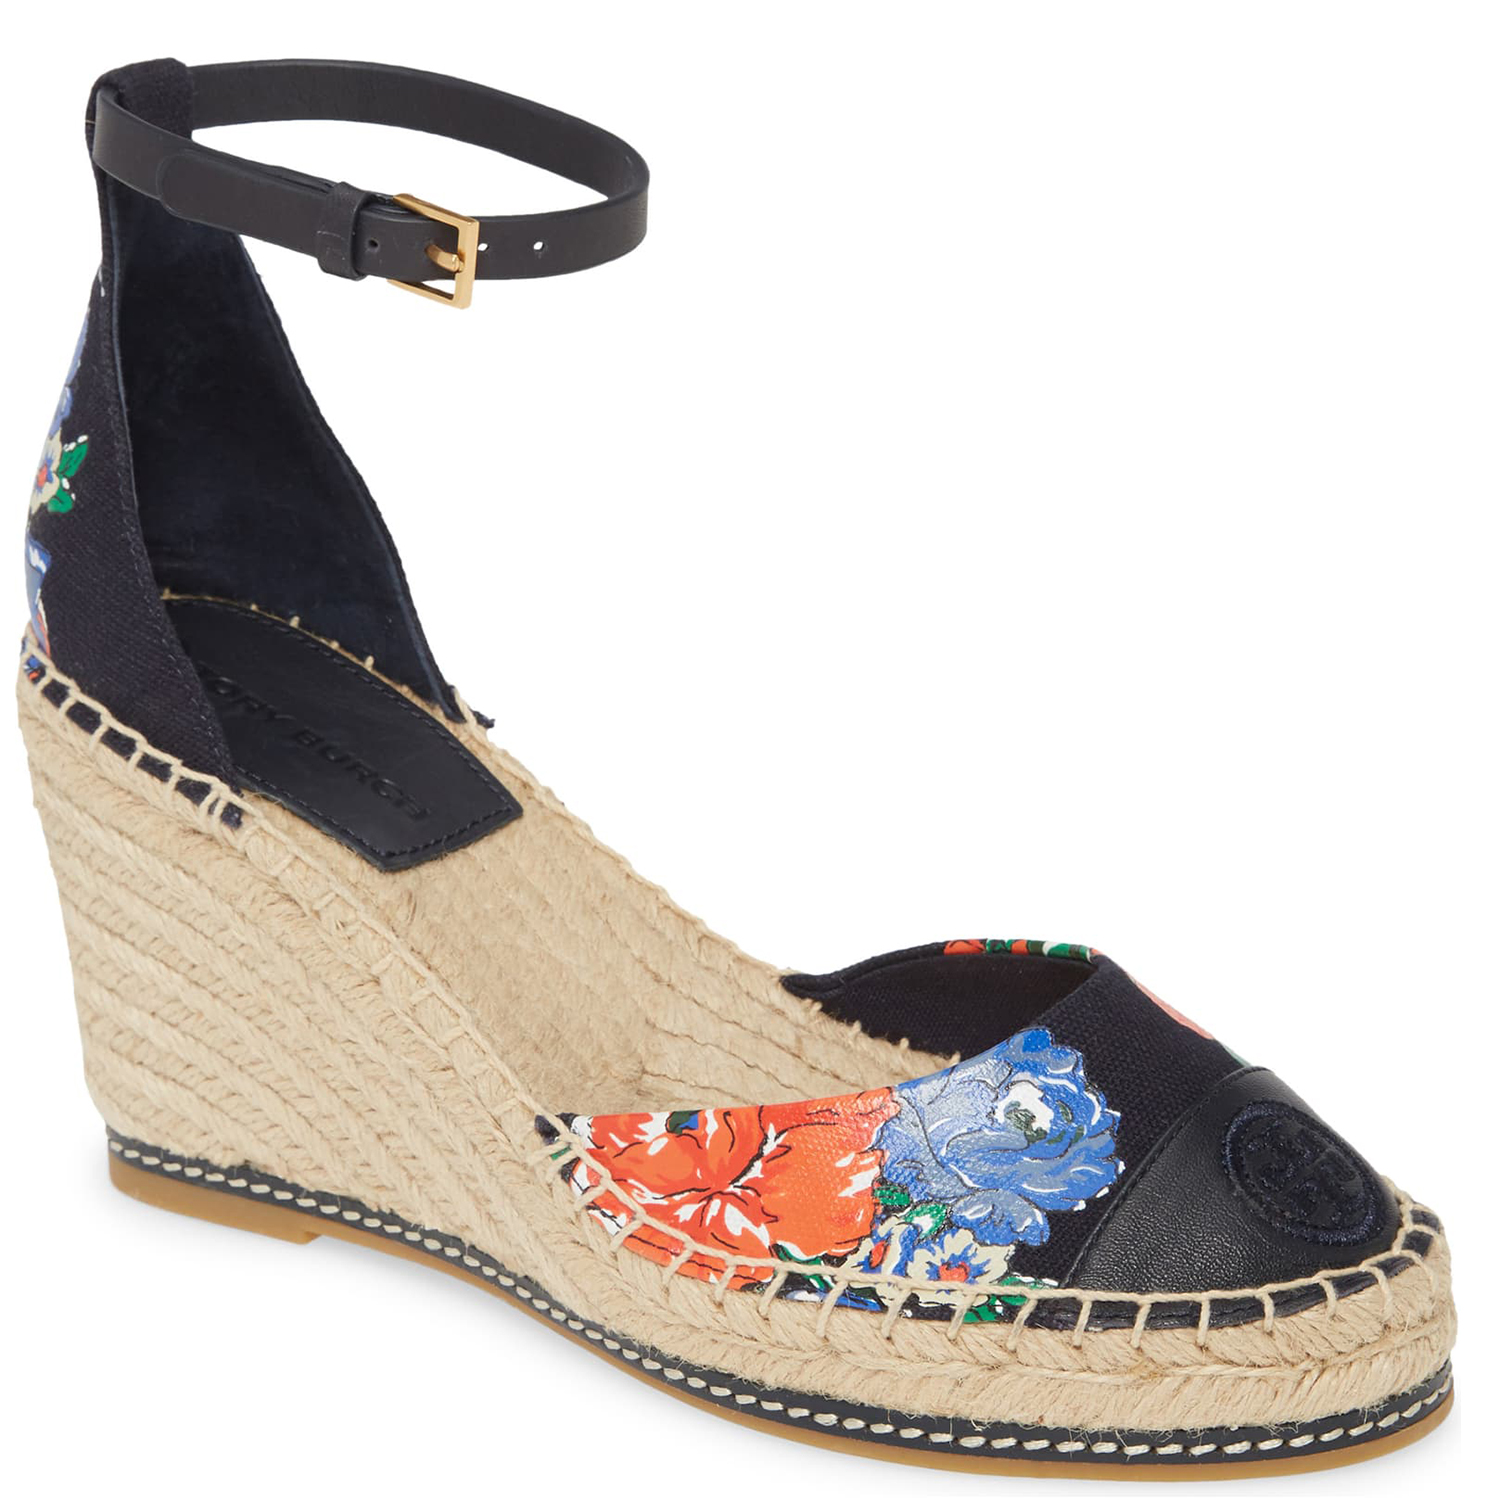 Tory Burch Espadrille Wedge Sandal